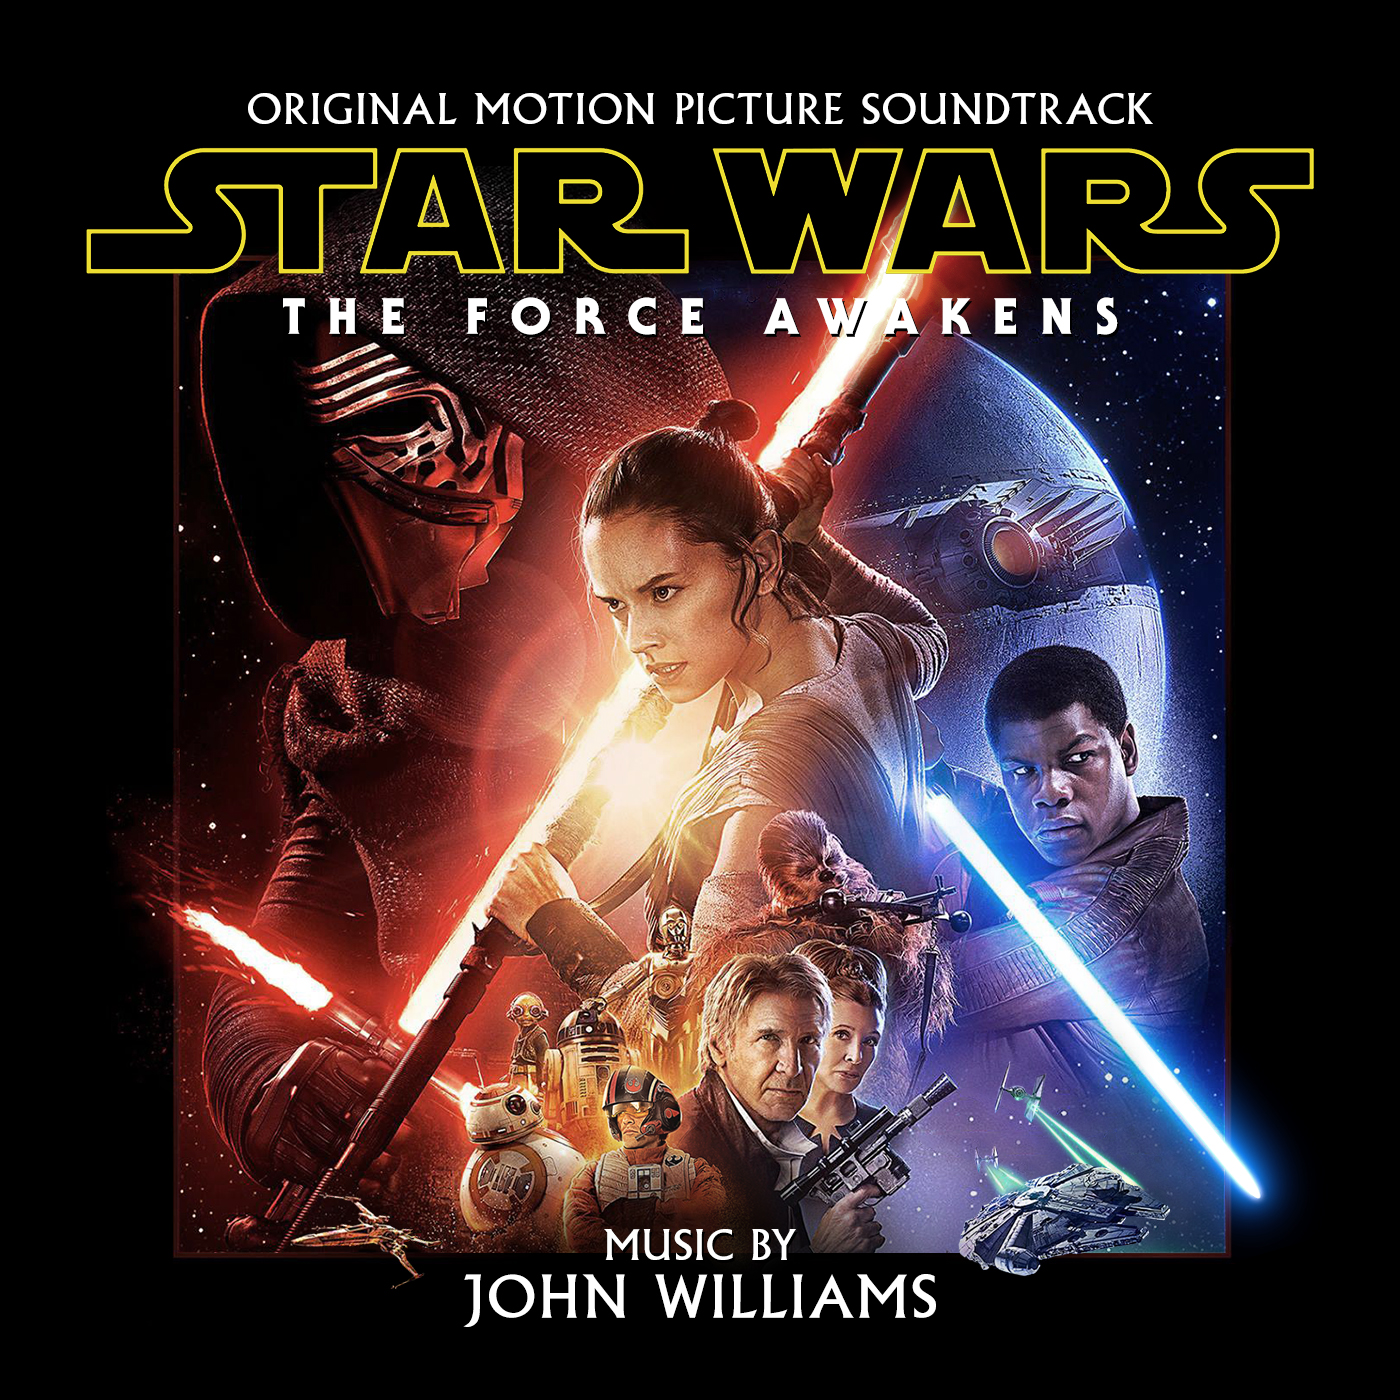 Star Wars The Force Awakens By John Williams Hqcovers